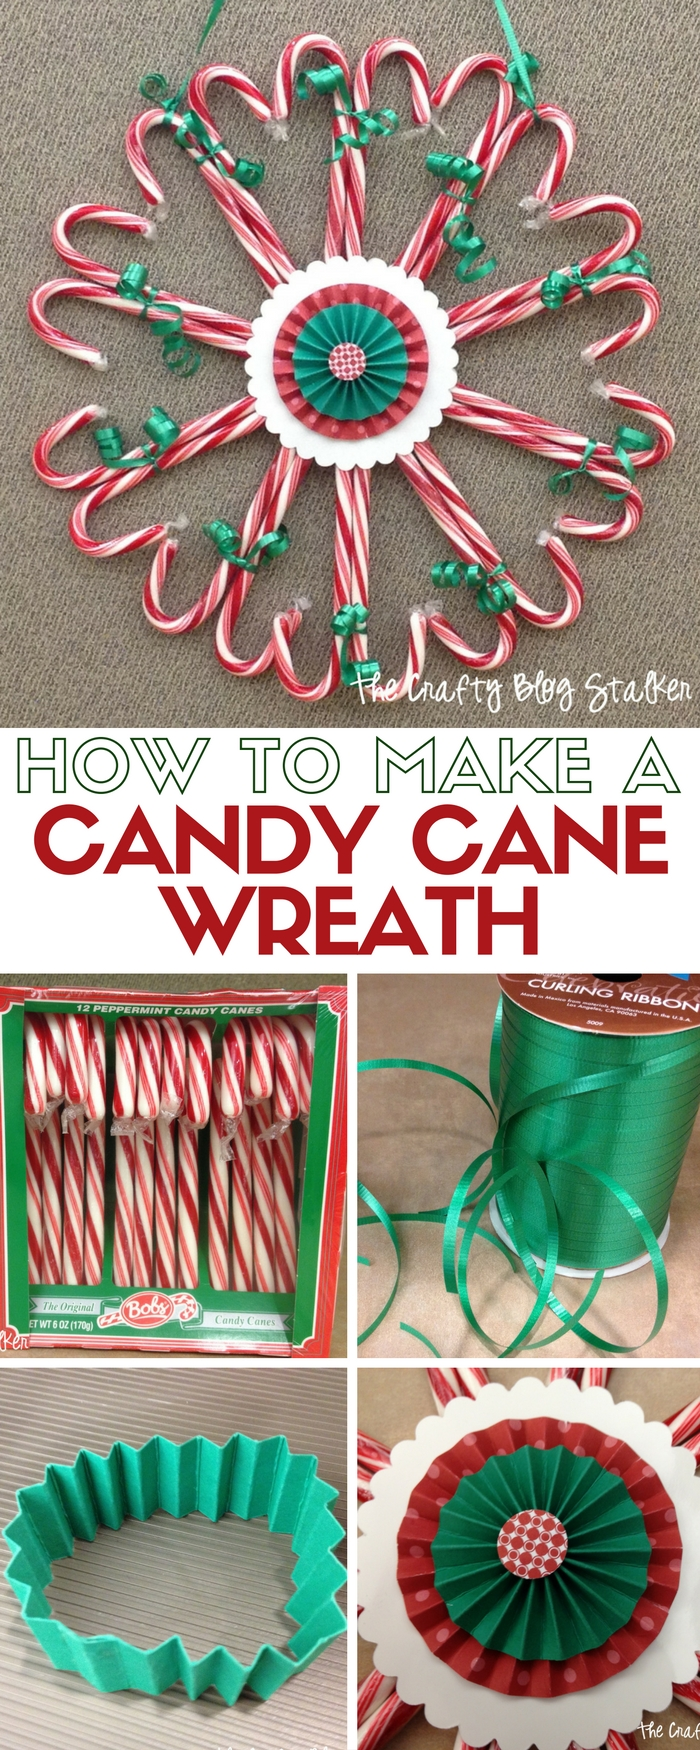 Candy Cane Wreath | Christmas Decor | Holidays | Neighbor Gift | Holiday Season | Handmade Gift | Easy DIY Craft Tutorial Idea